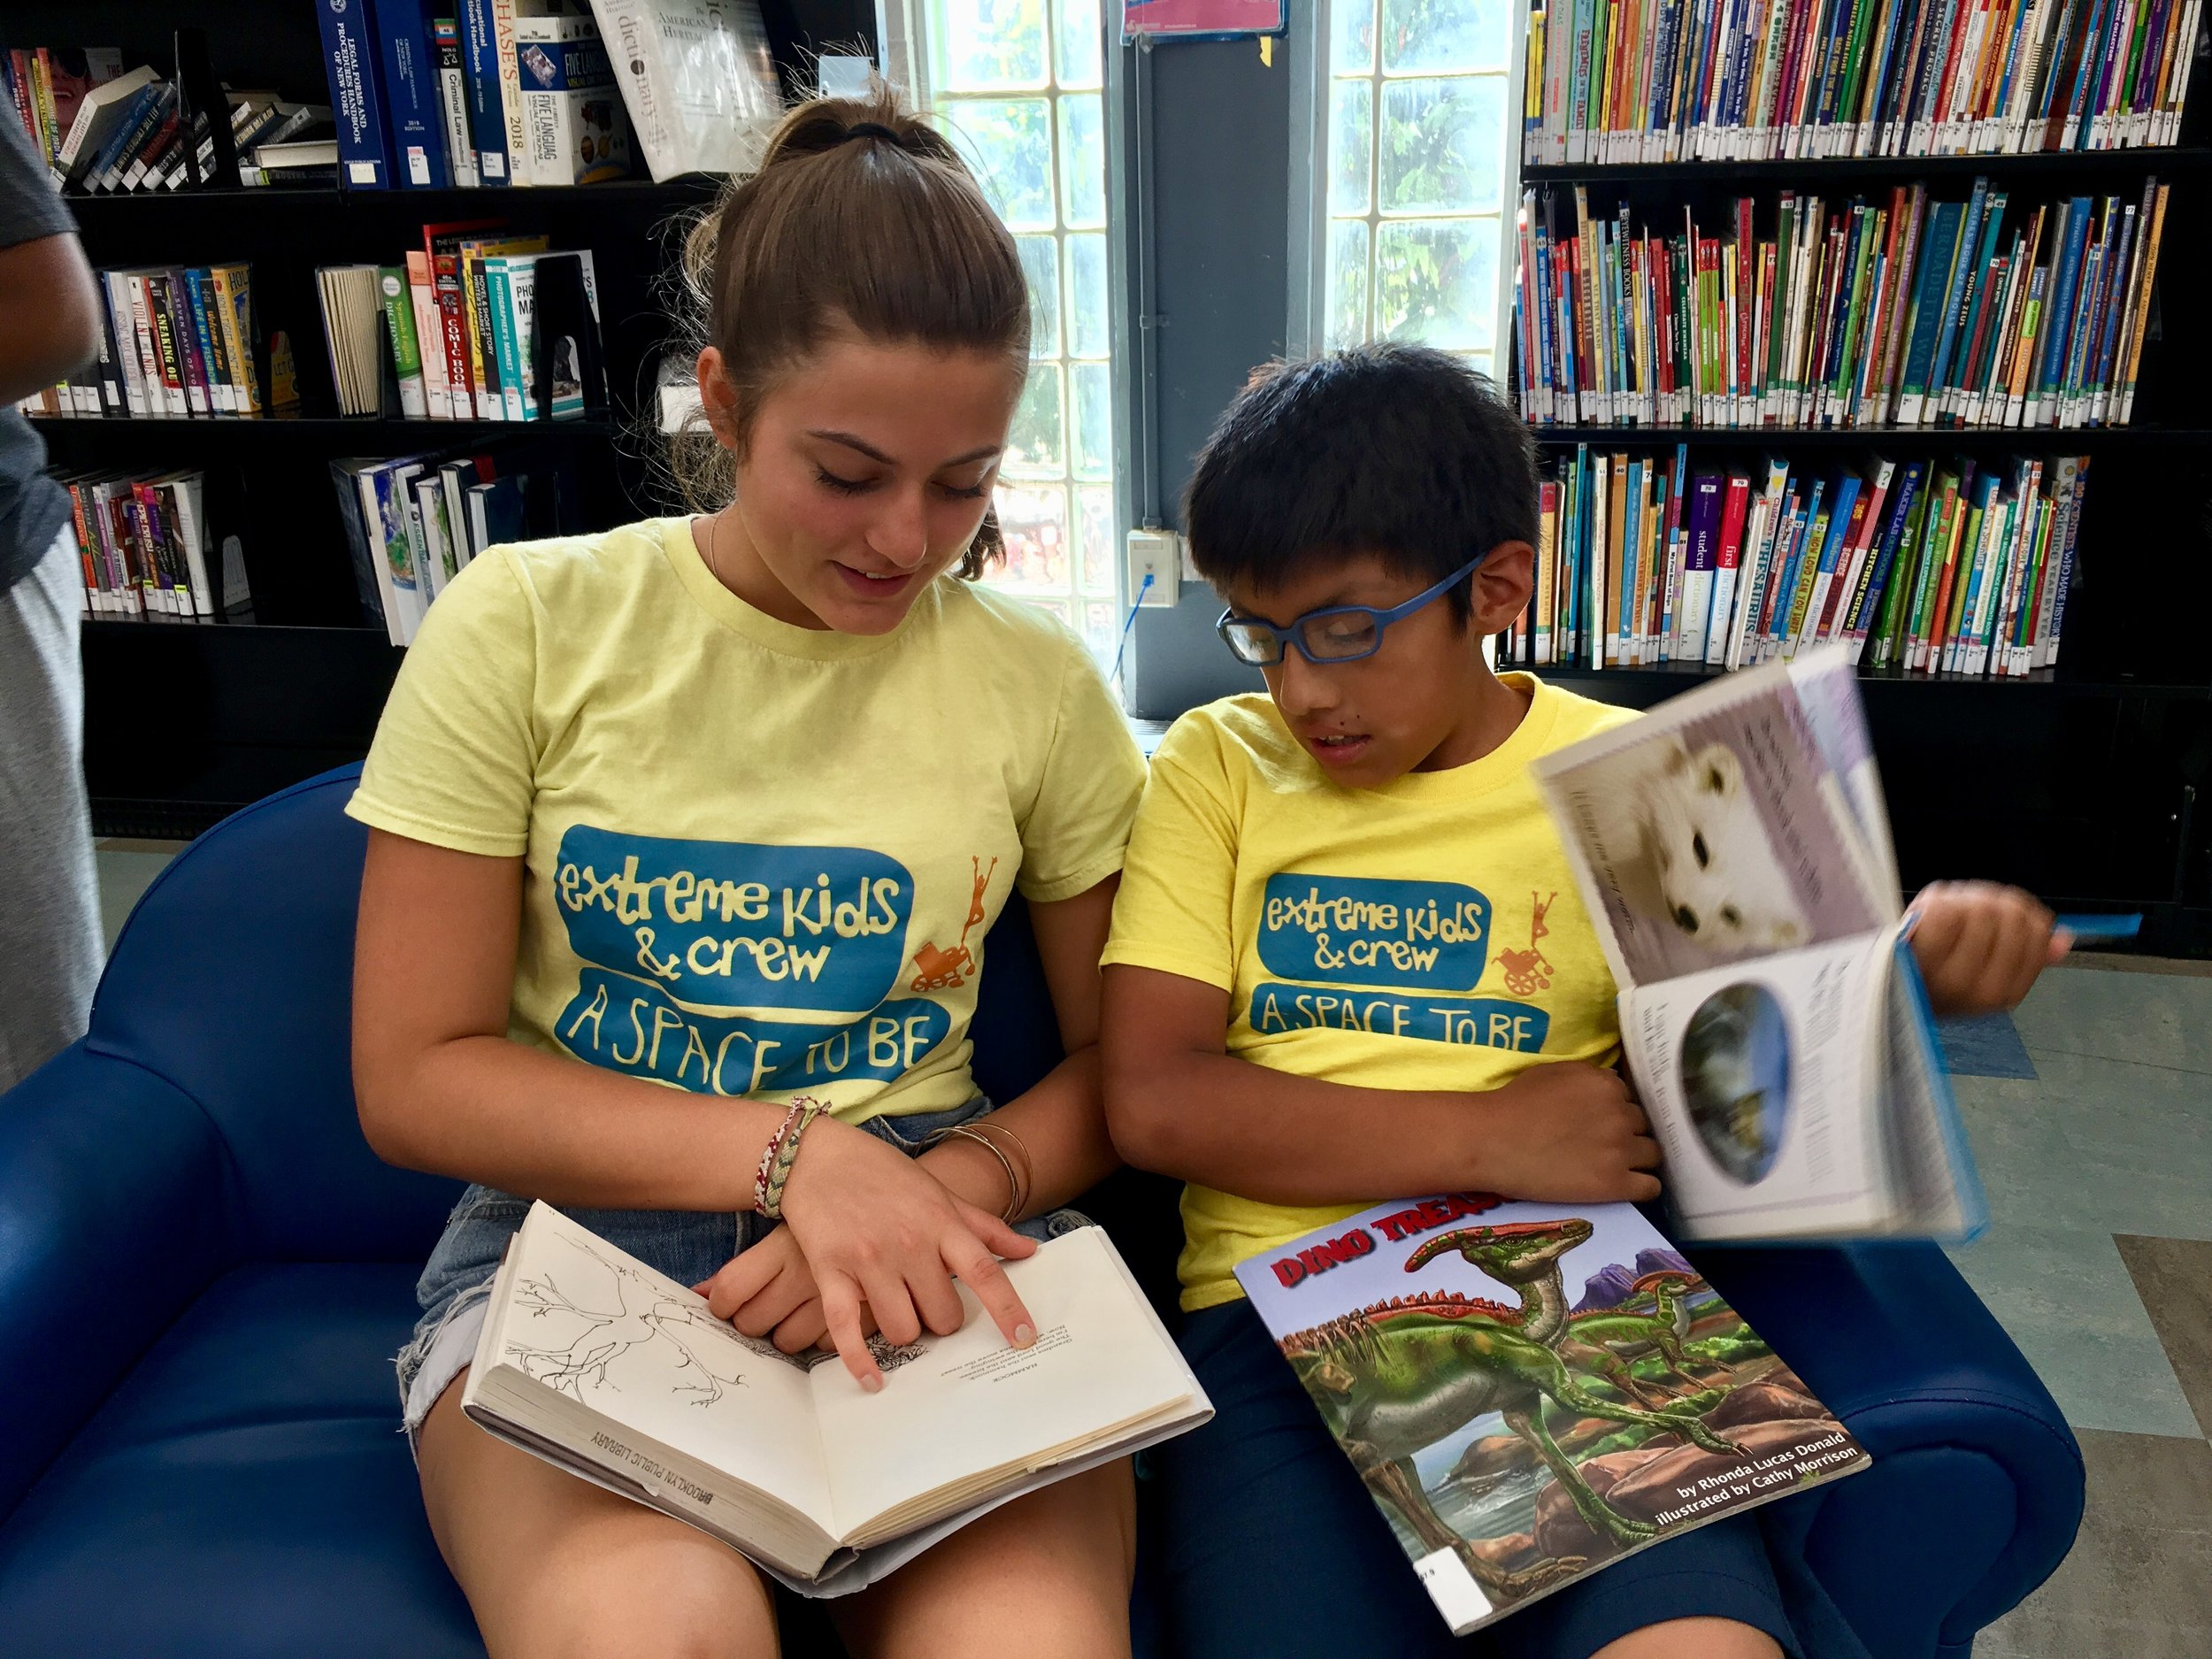 Reading together at the library.